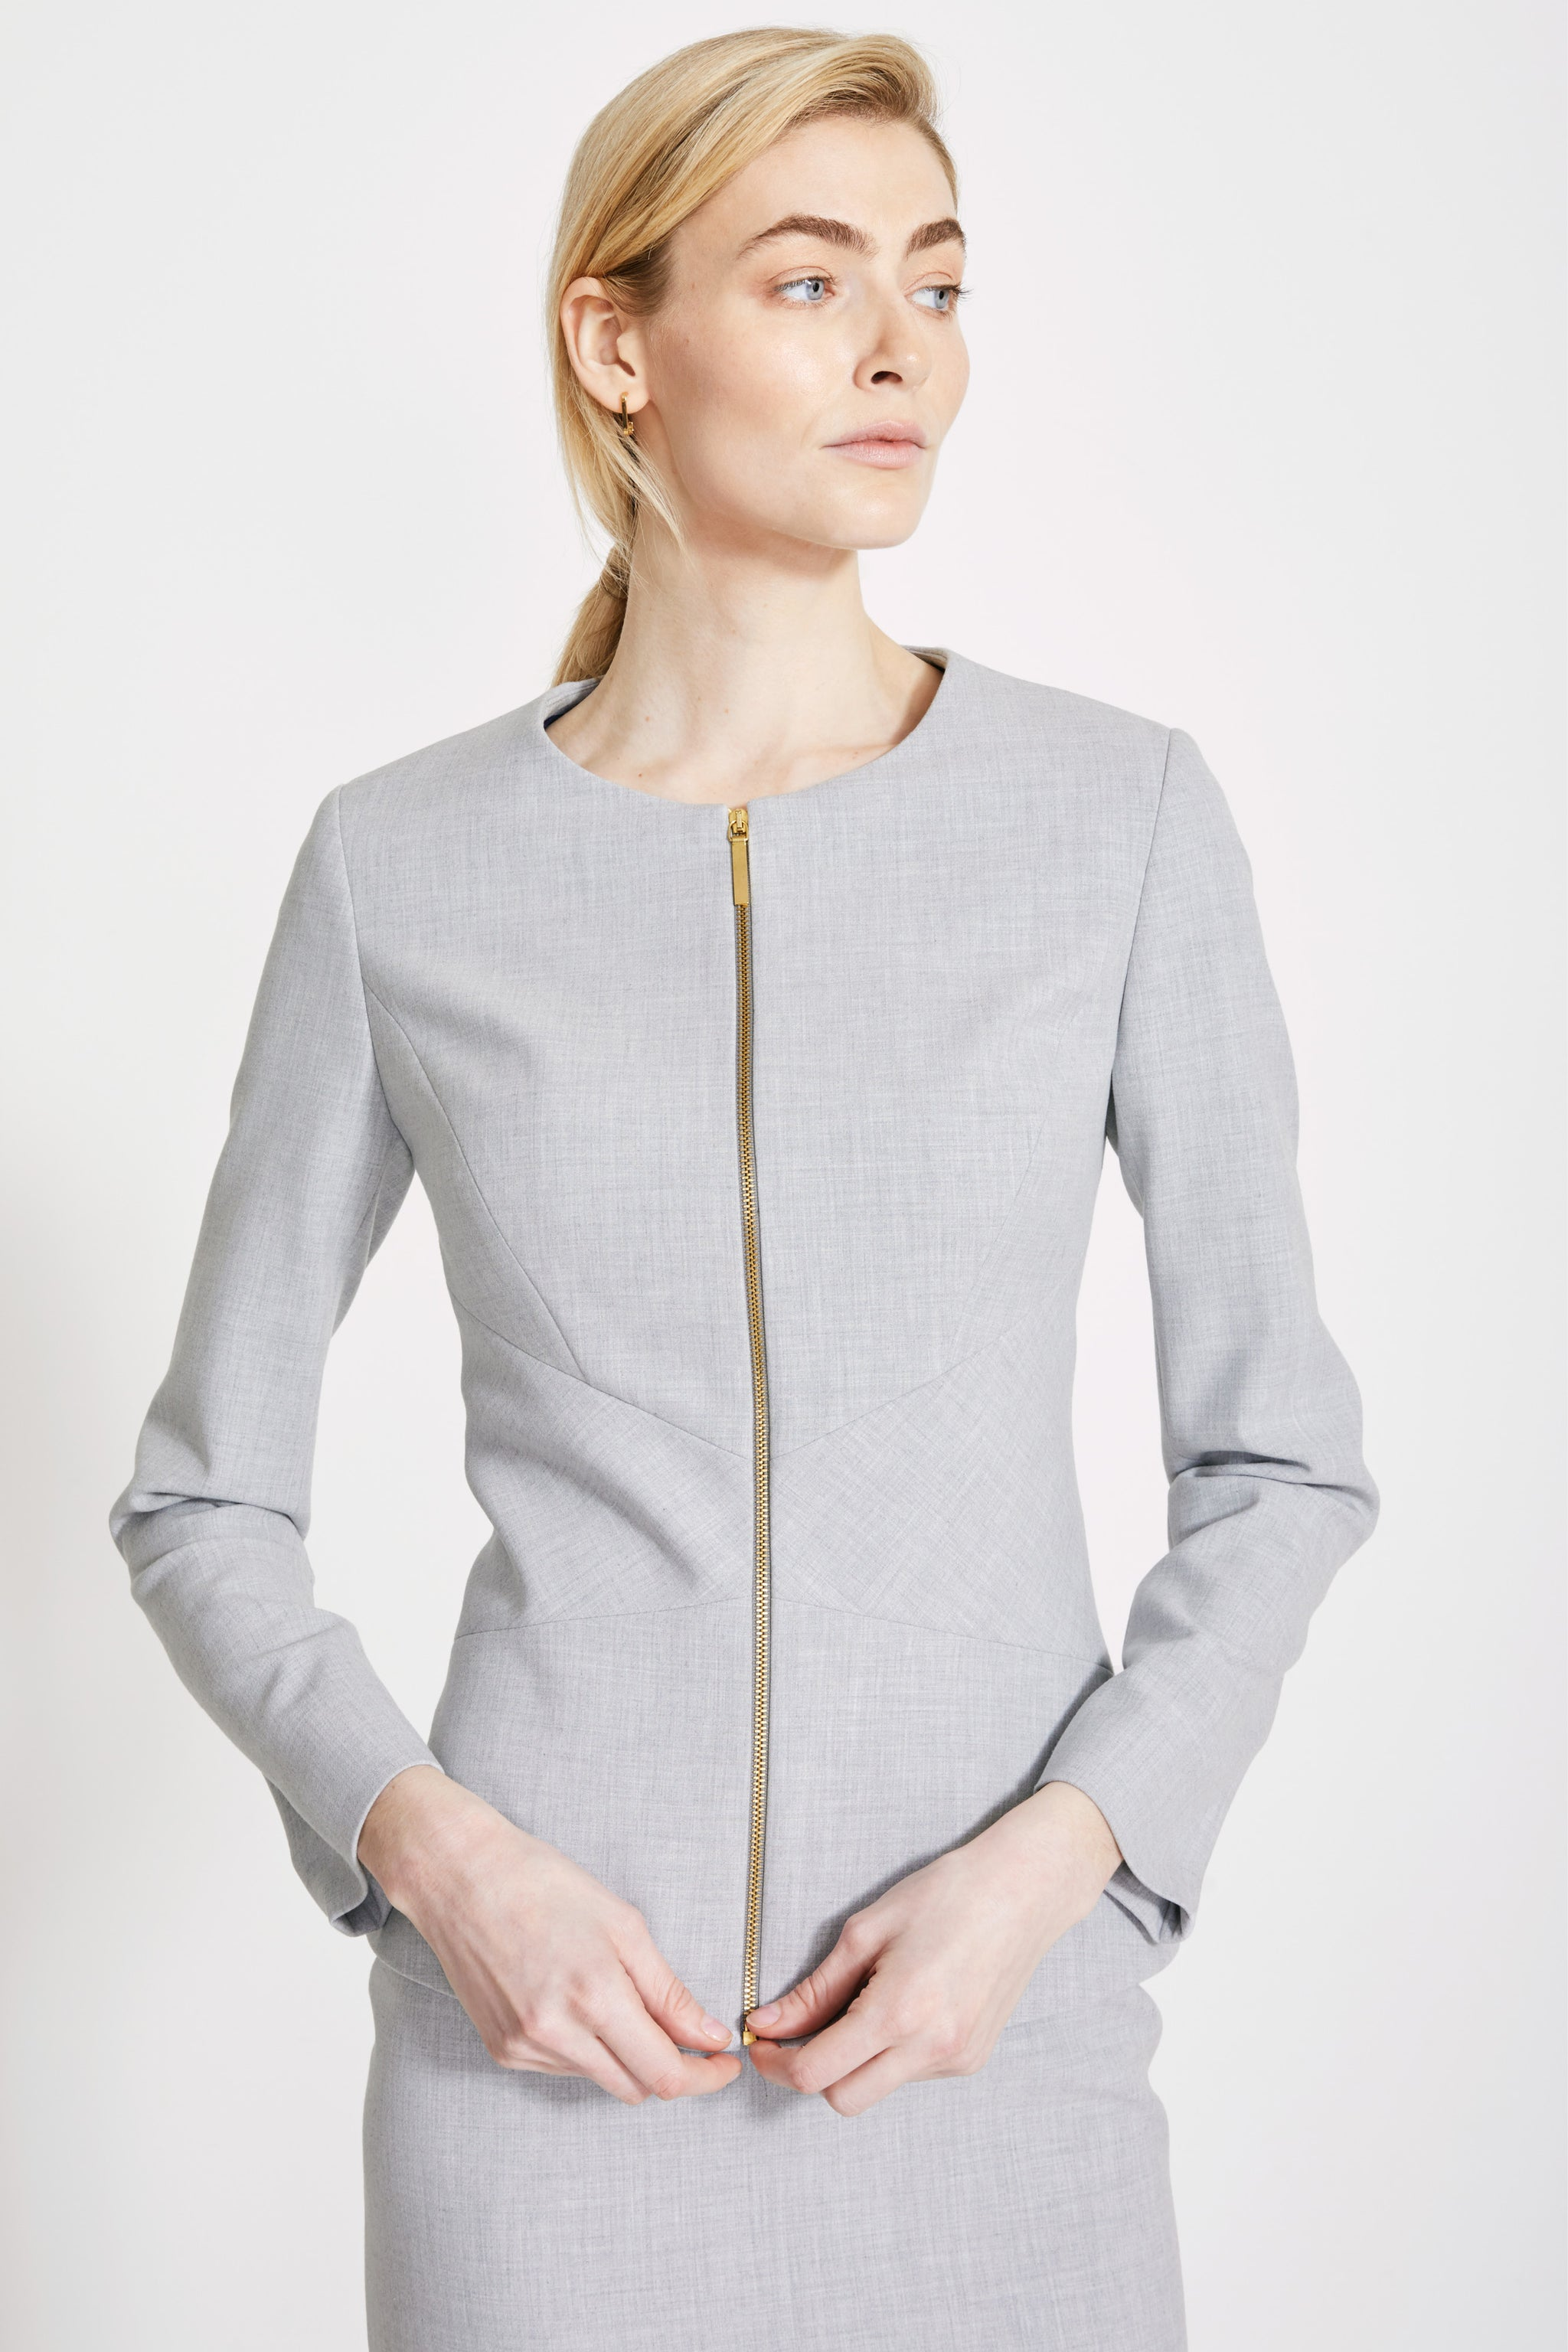 Finsbury Pale Grey Jacket